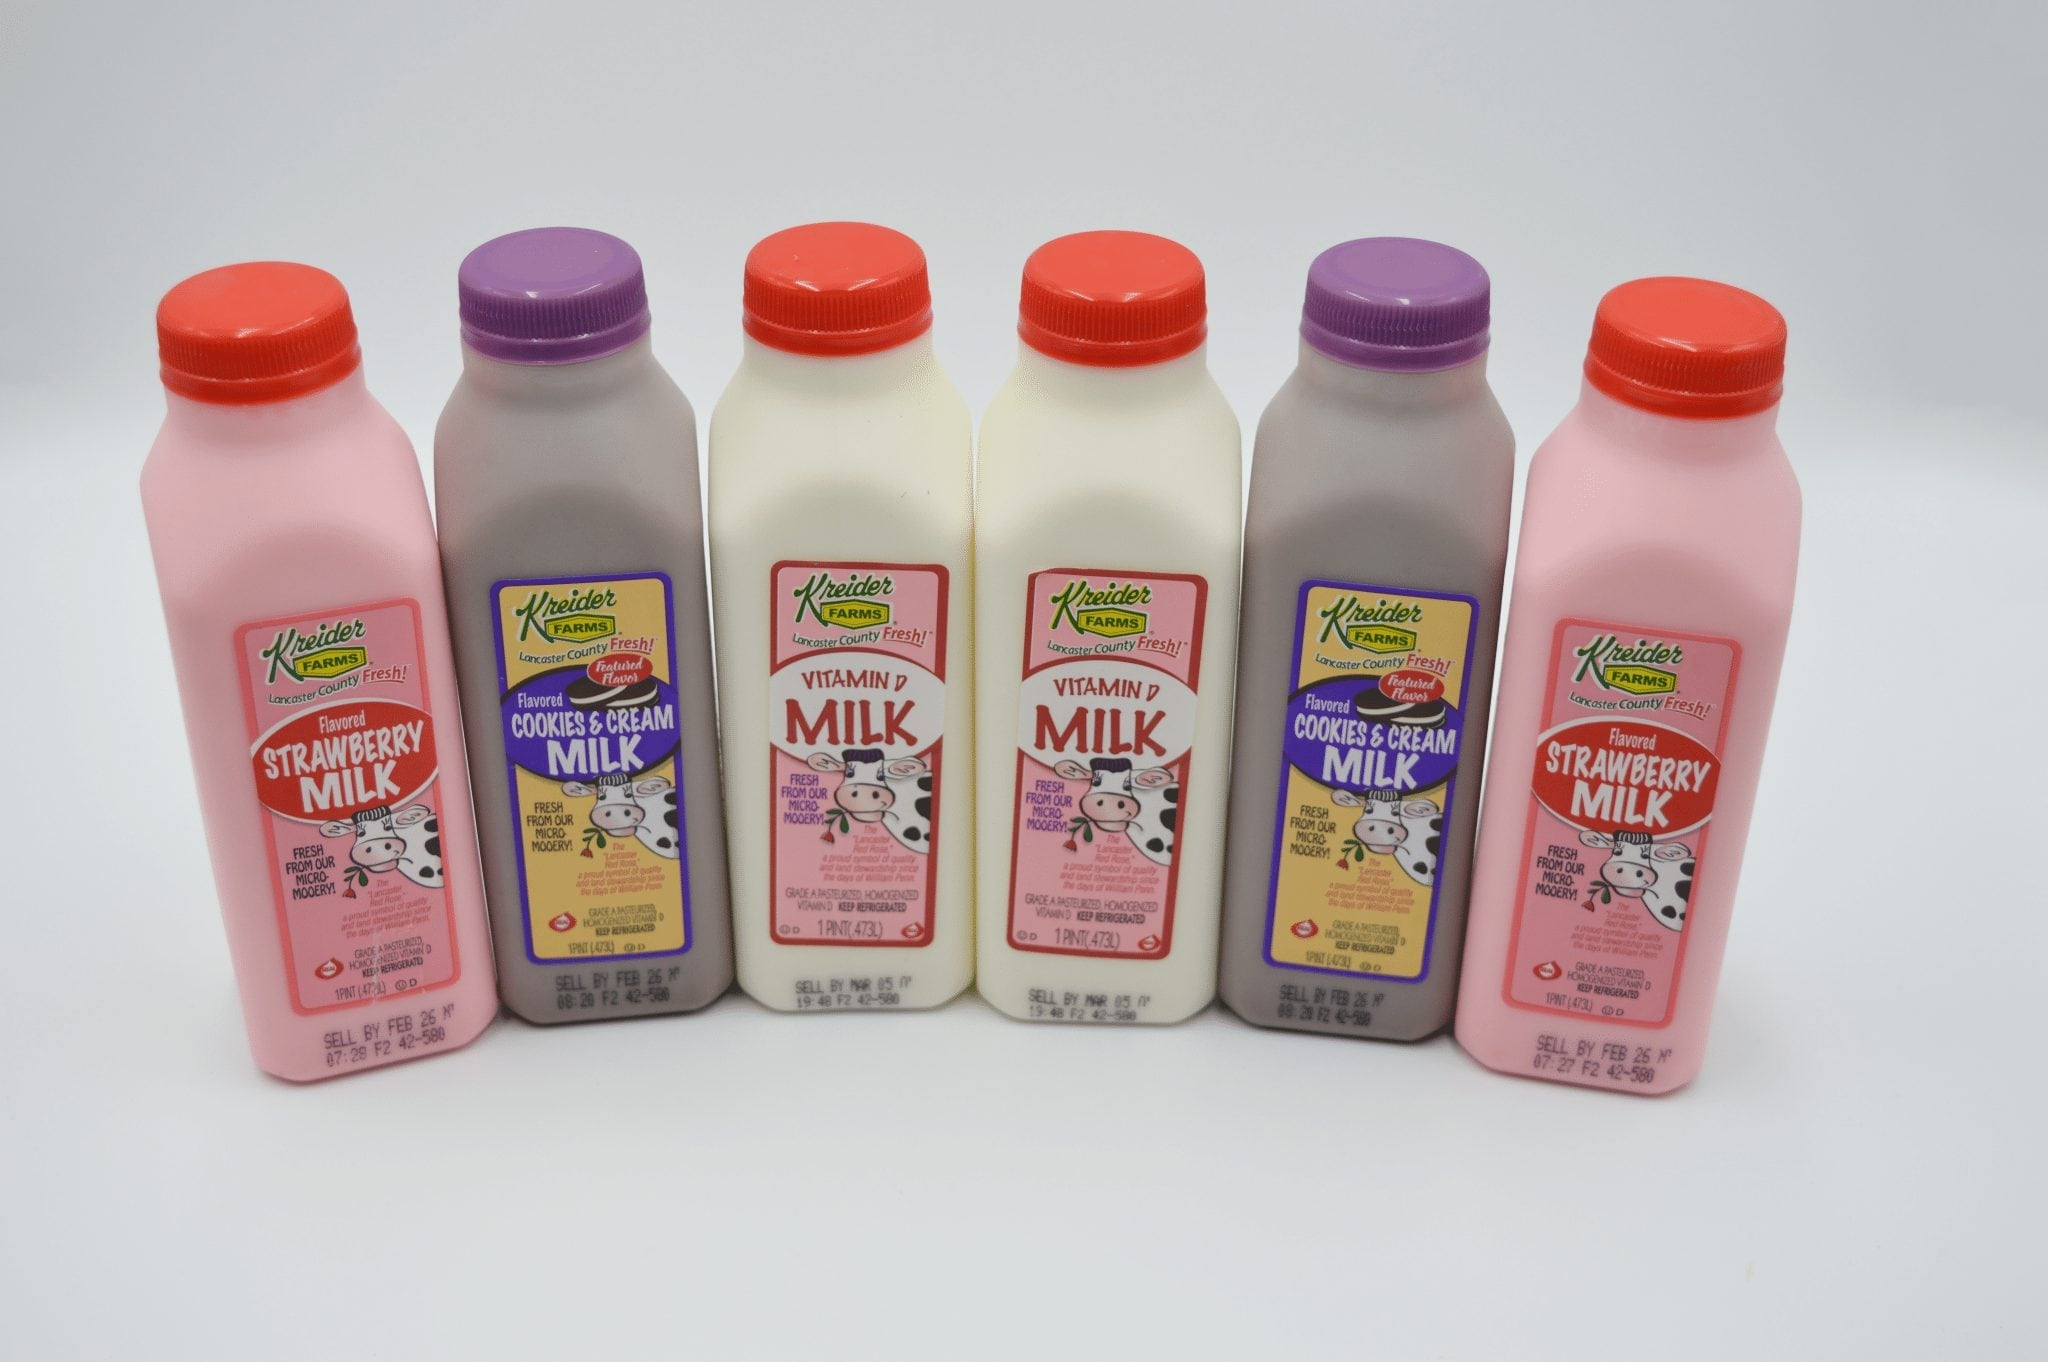 containers of milk, strawberry milk, and cookies & cream milk